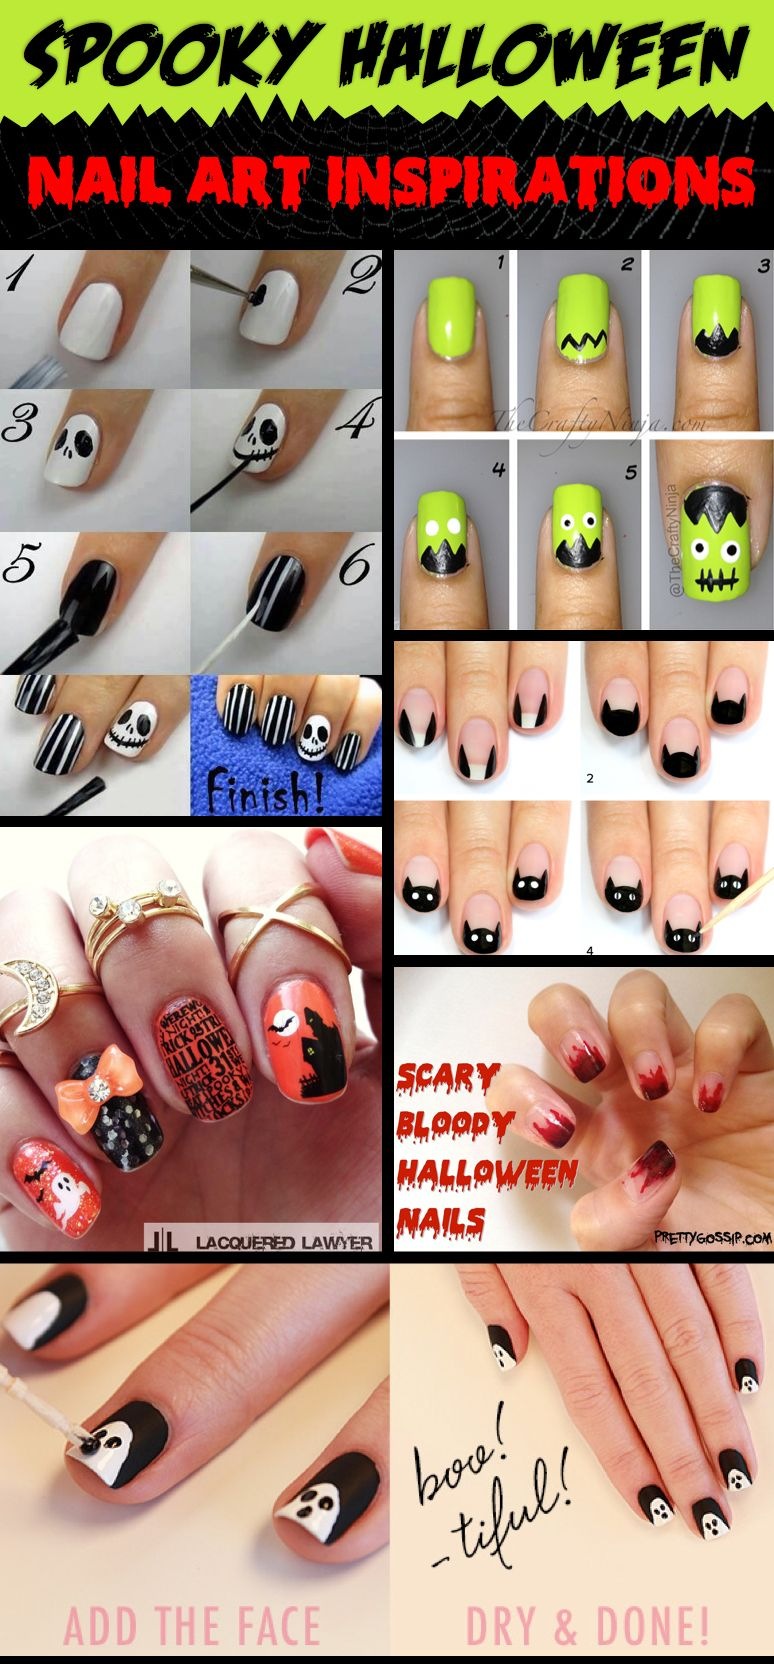 30 gorgeous and spooky halloween nail art inspirations that will here are 40 truly inspiring and mind blowing ideas for getting yourself some halloween themed nails for solutioingenieria Choice Image